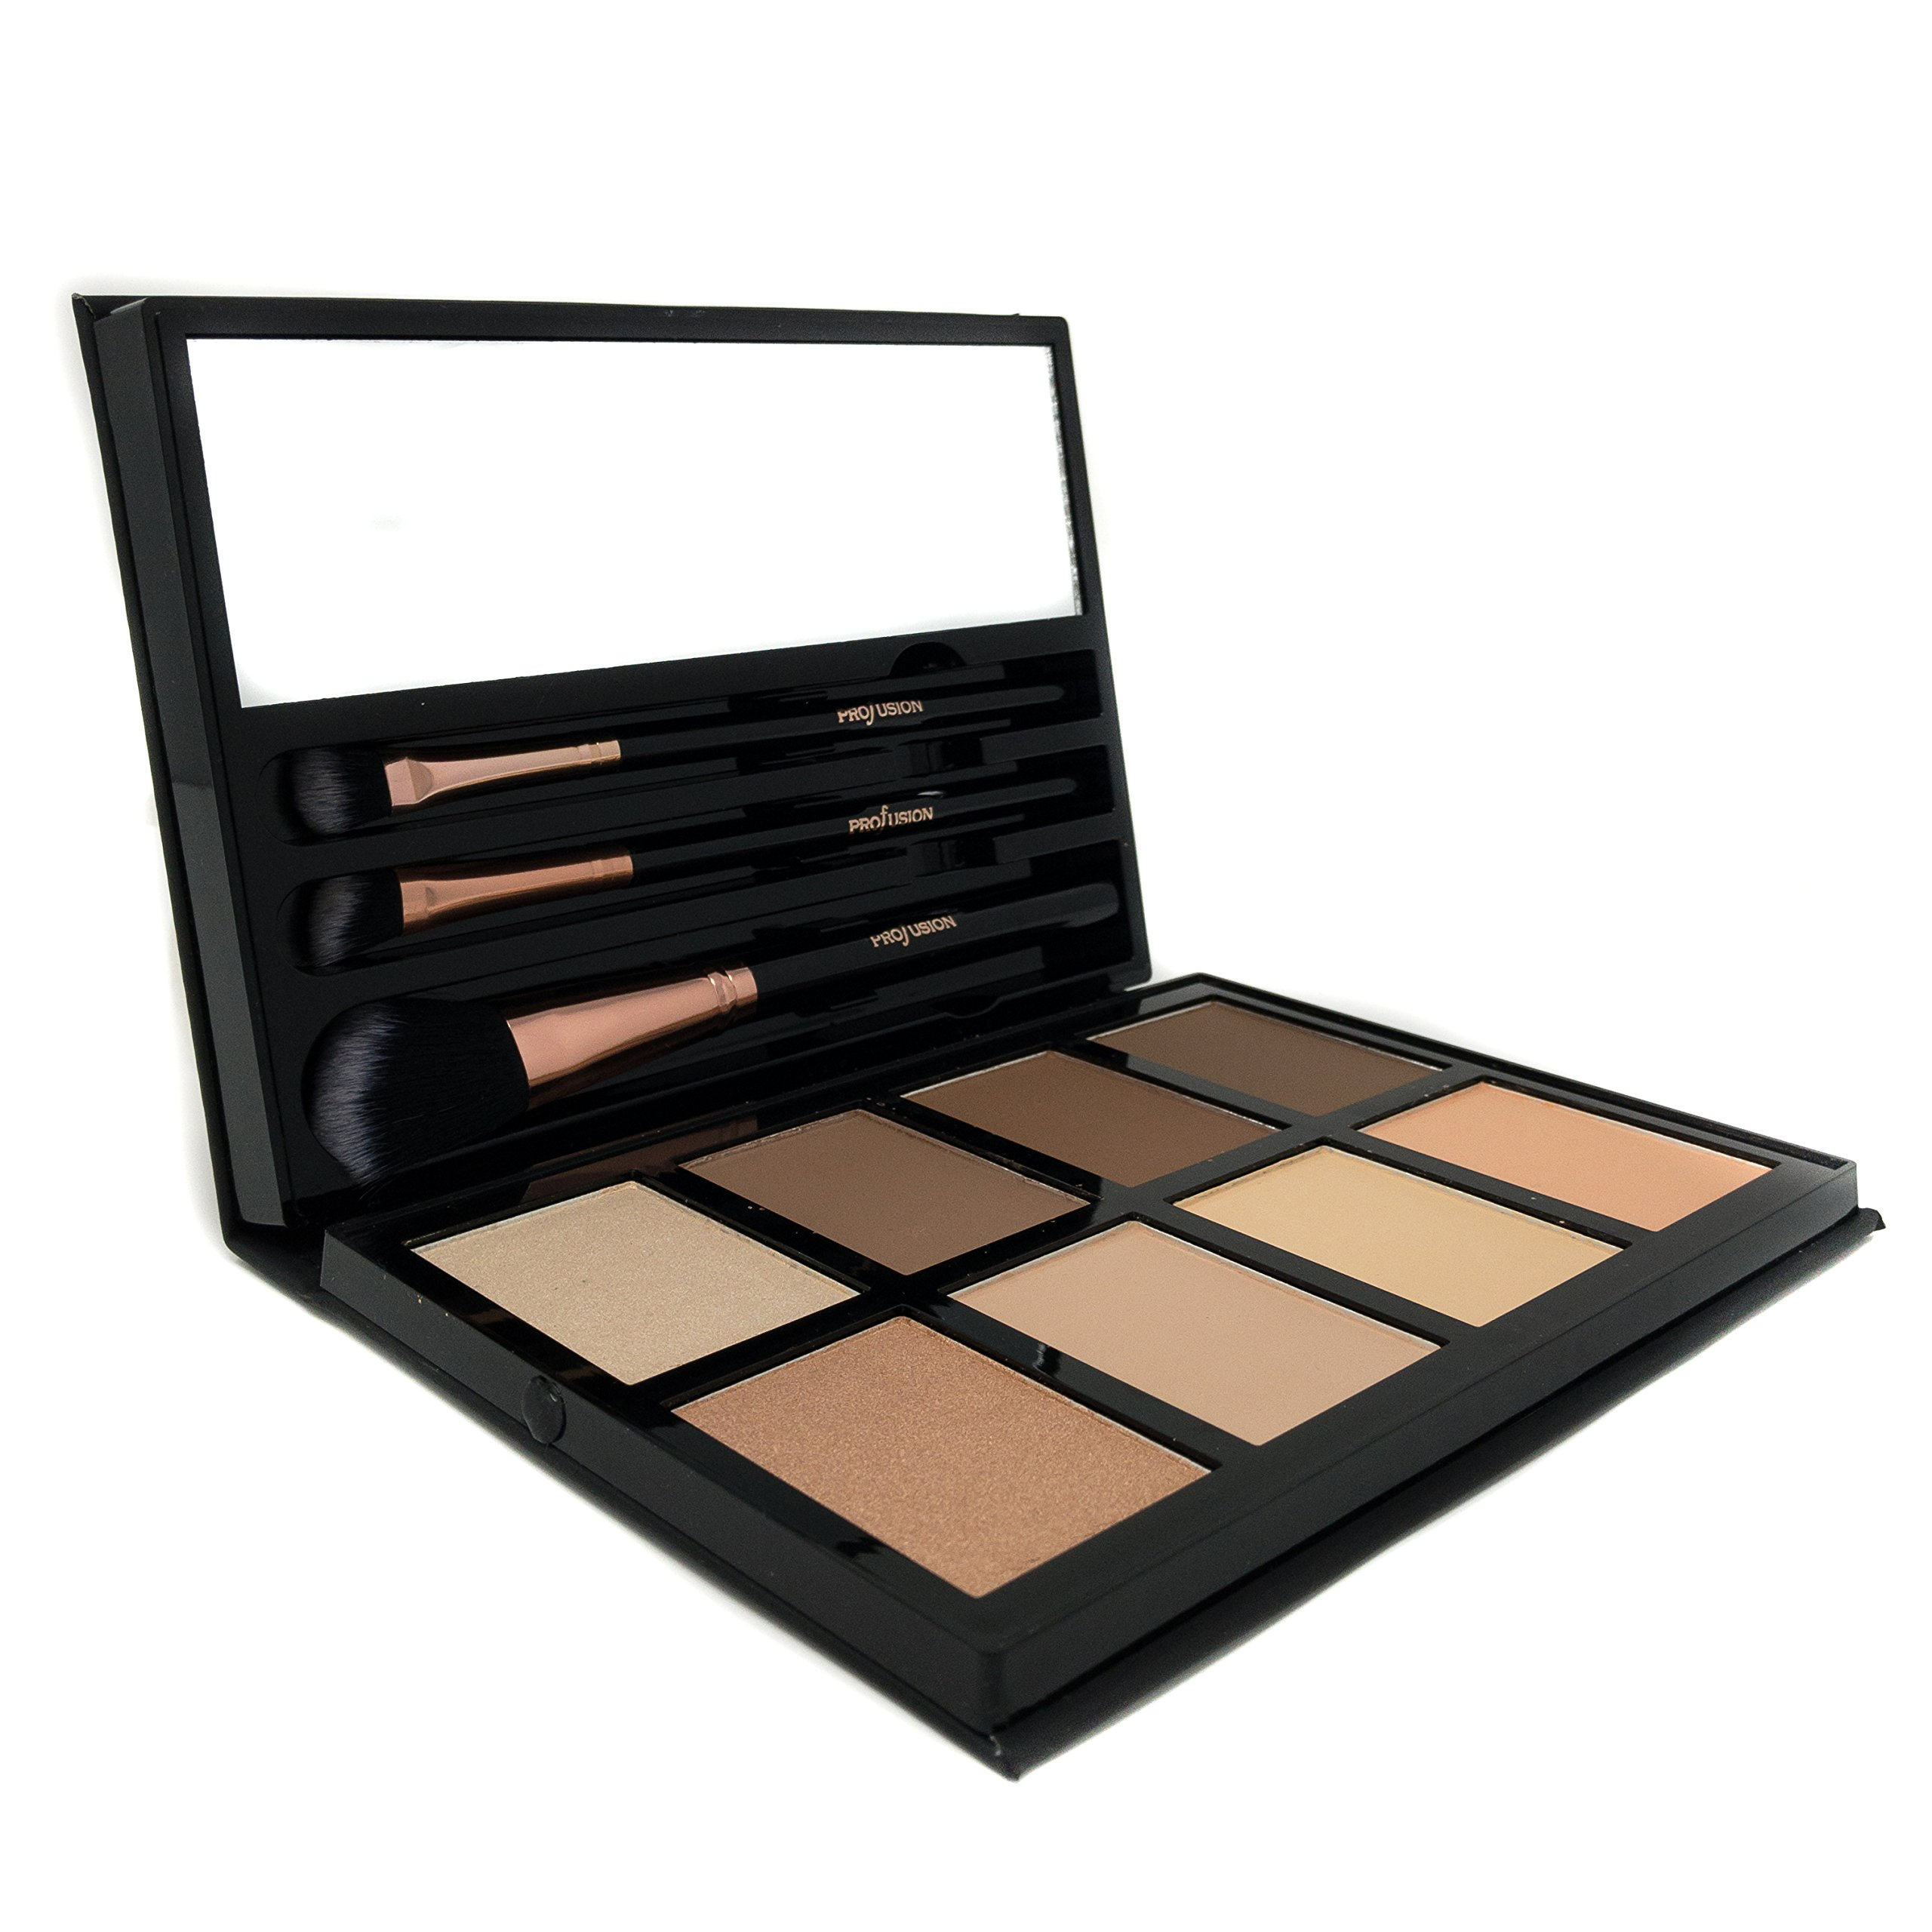 Profusion Cosmetics - Contour - Professional 8 Color Palette - Face Powder Highlighter Bronzer Makeup Kit Brushes Included - Champagne Highlight Nutmeg Ivory Peach Pale Gala Moonstone Java Ebony by Profusion Cosmetics (Image #1)